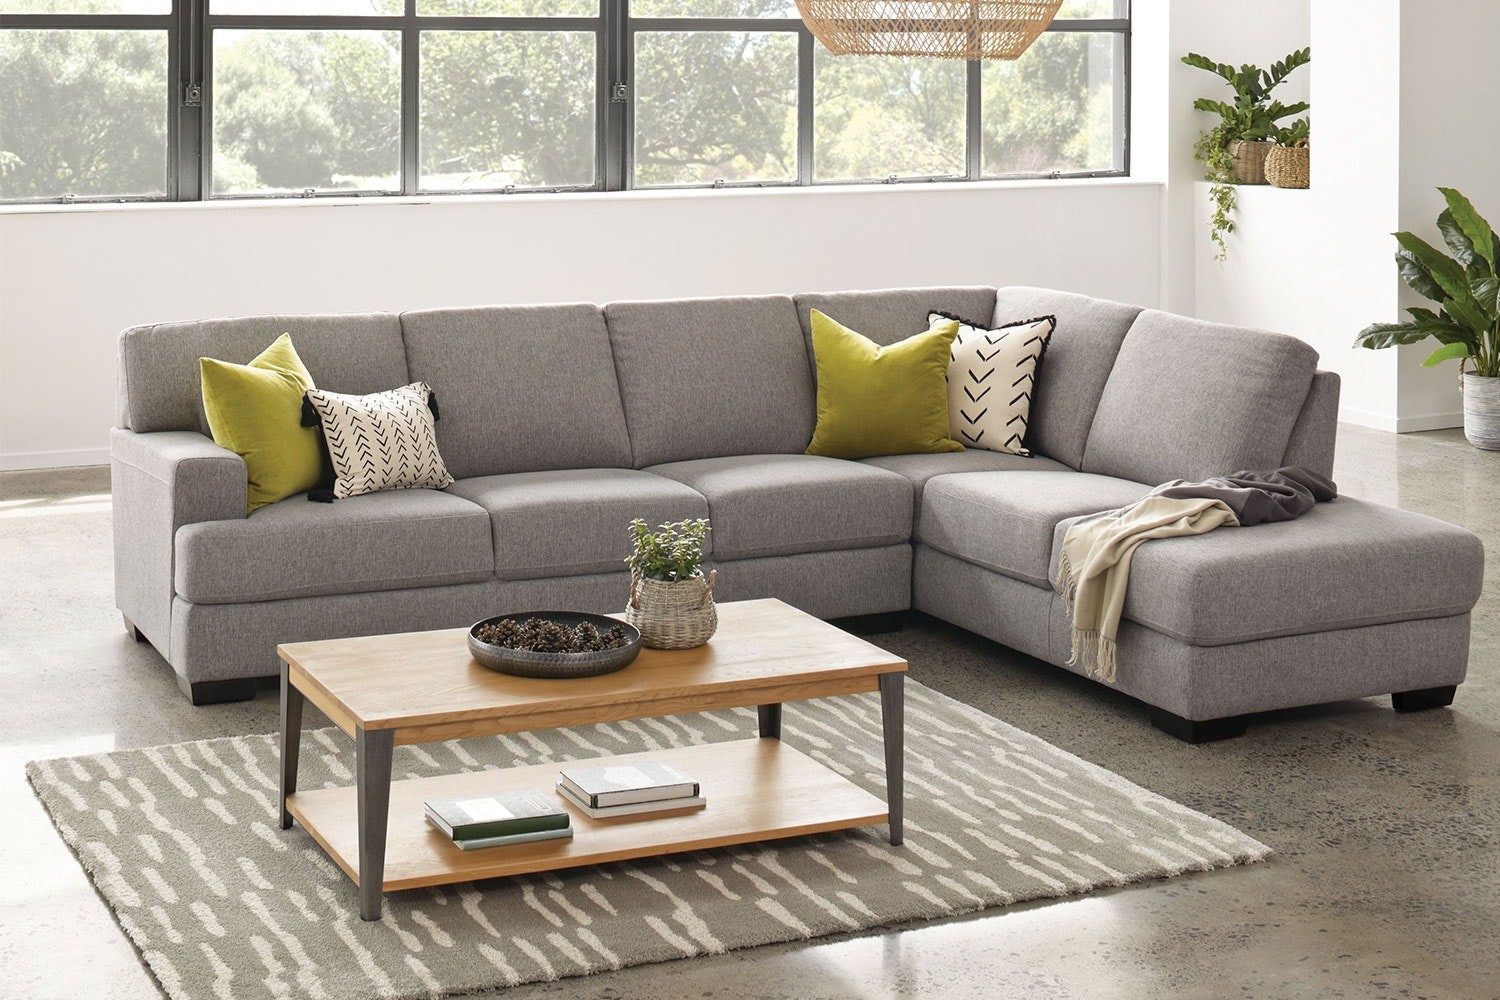 Greystone 4 Seater Fabric Corner Lounge Suite